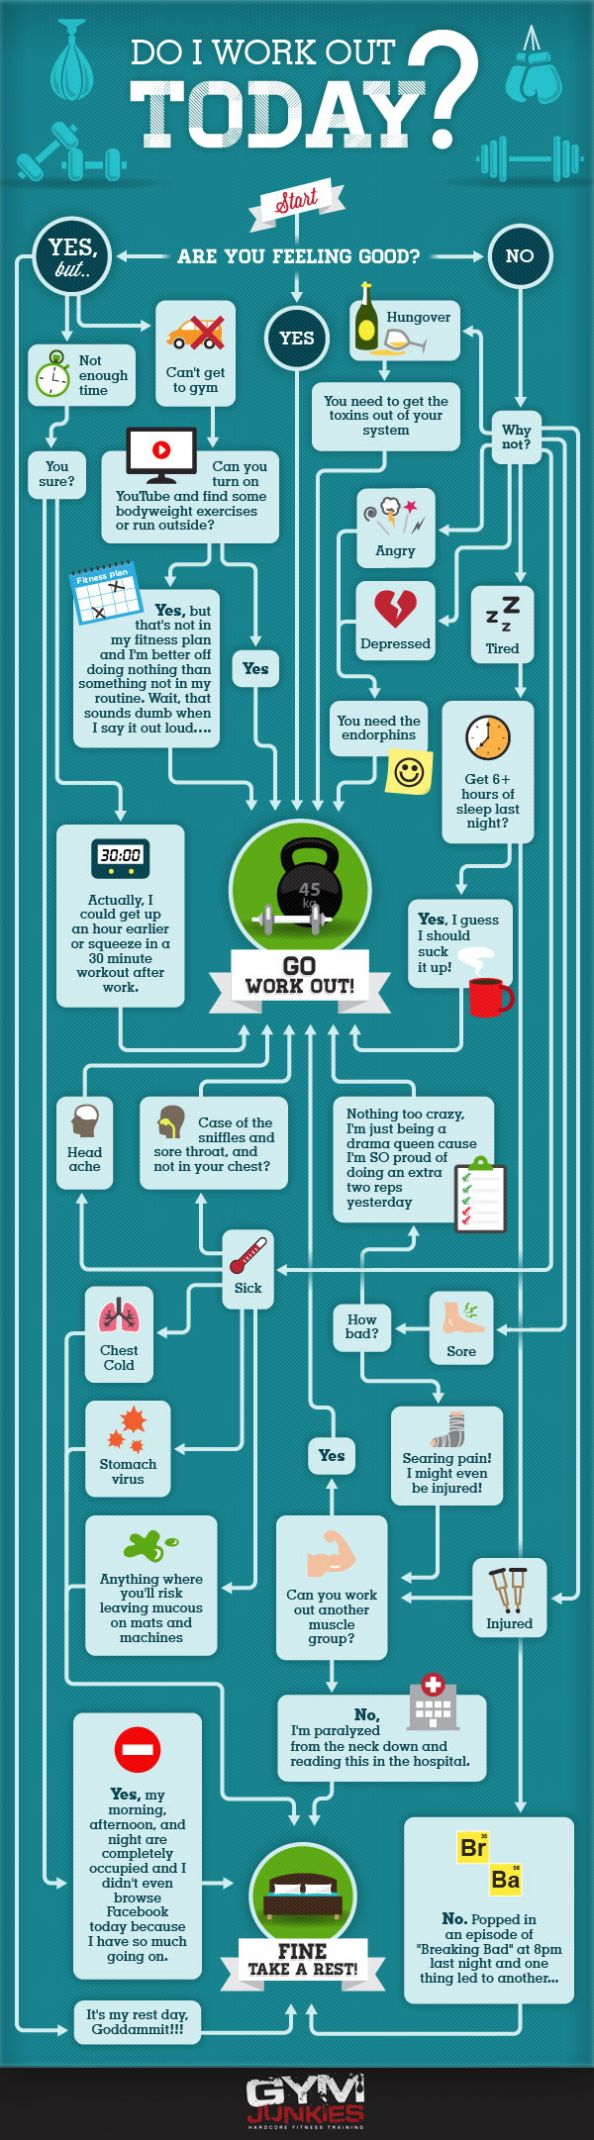 Do I Workout Today?  Infographic